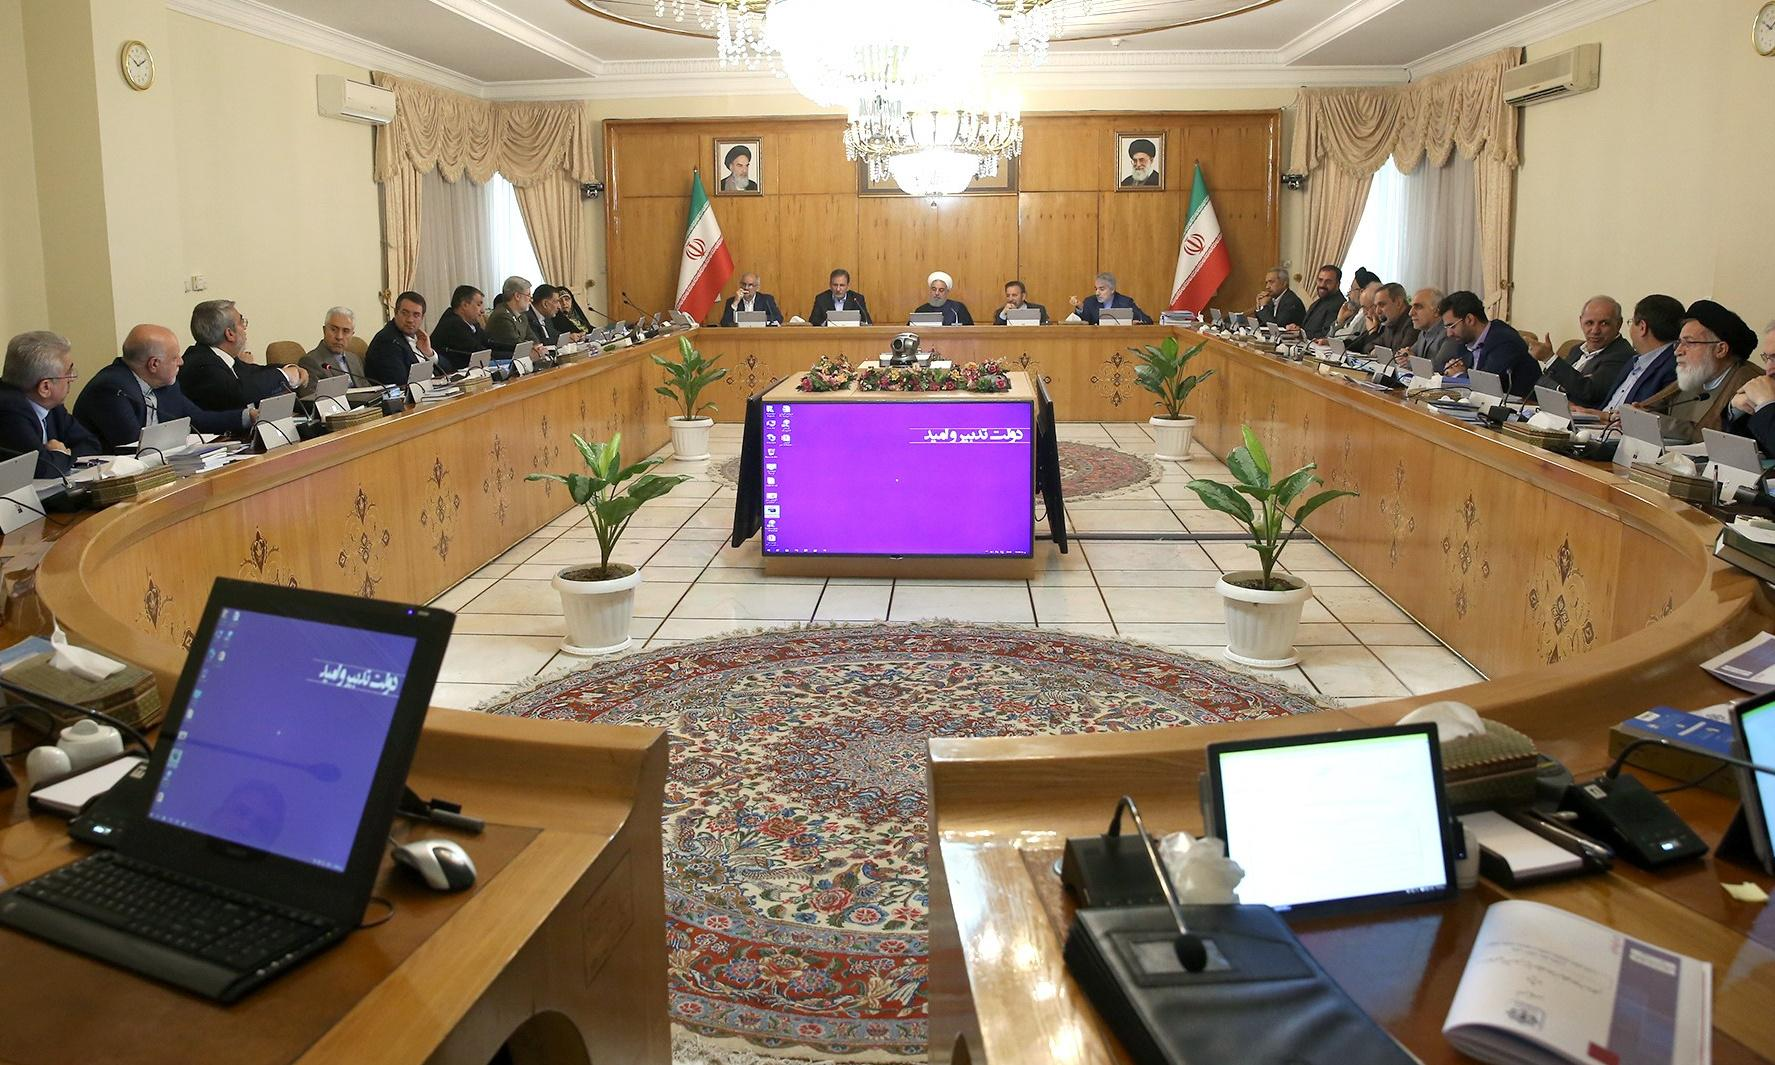 Iran nuclear deal: what has Tehran said and what happens next?